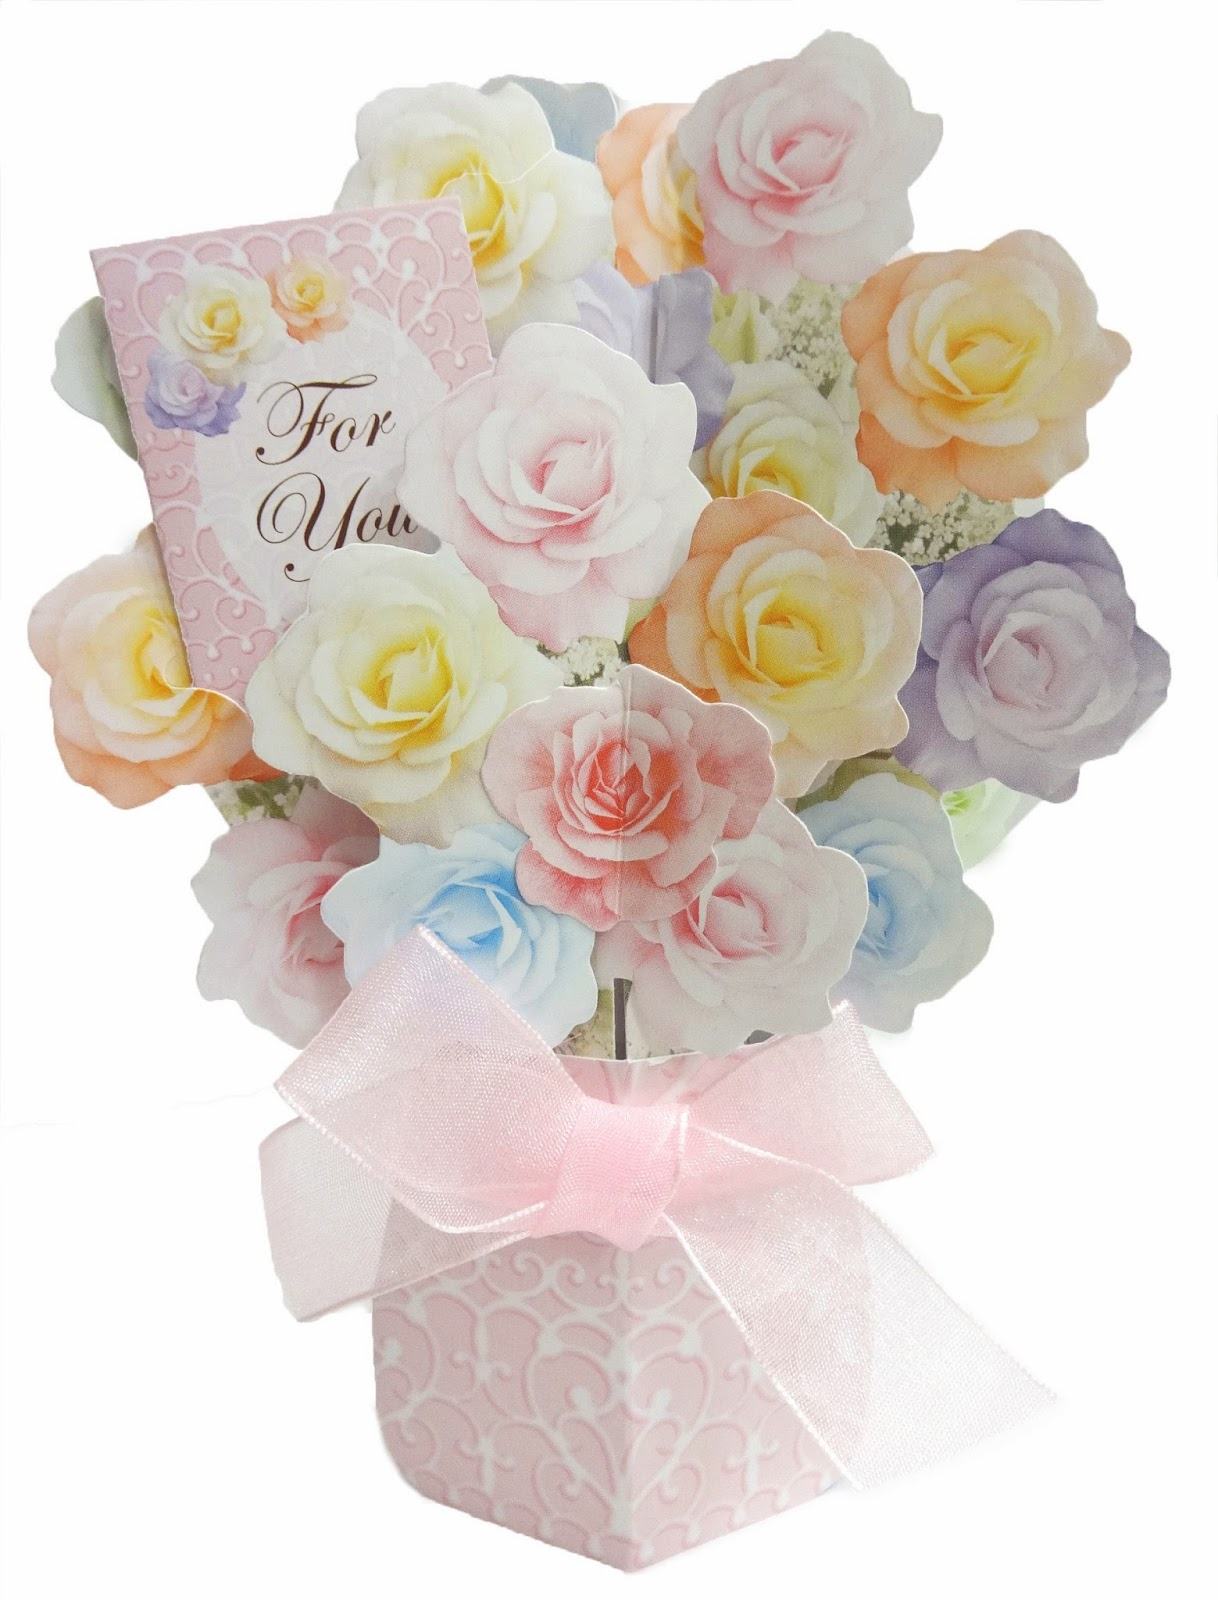 French maison de fleur house of flowers collection miss flowers in vase soft color rose pop up greeting card m4hsunfo